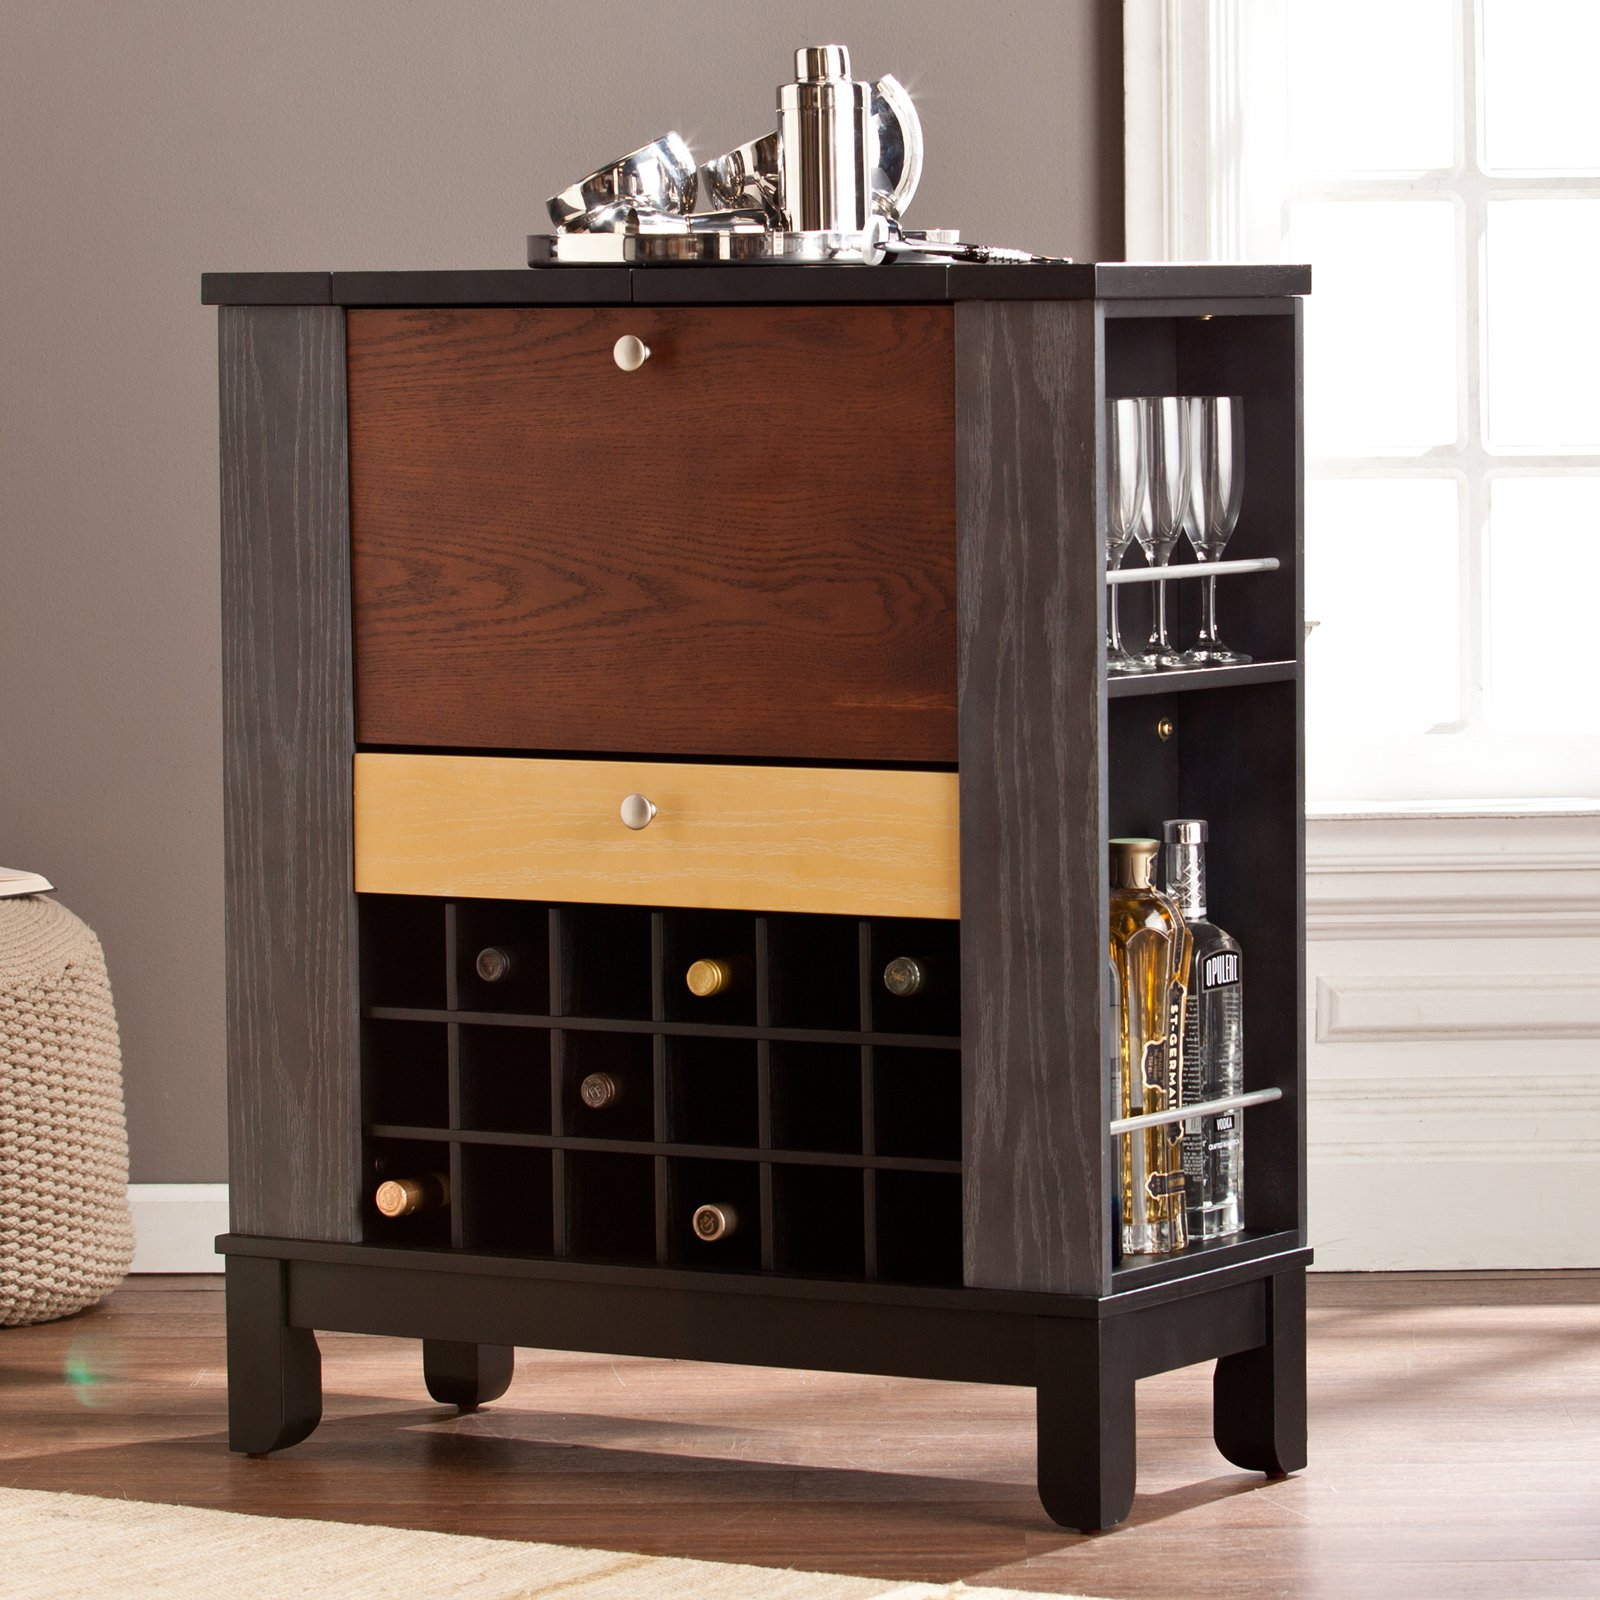 Southern Enterprises Warren Wine/Bar Cabinet - Walmart.com